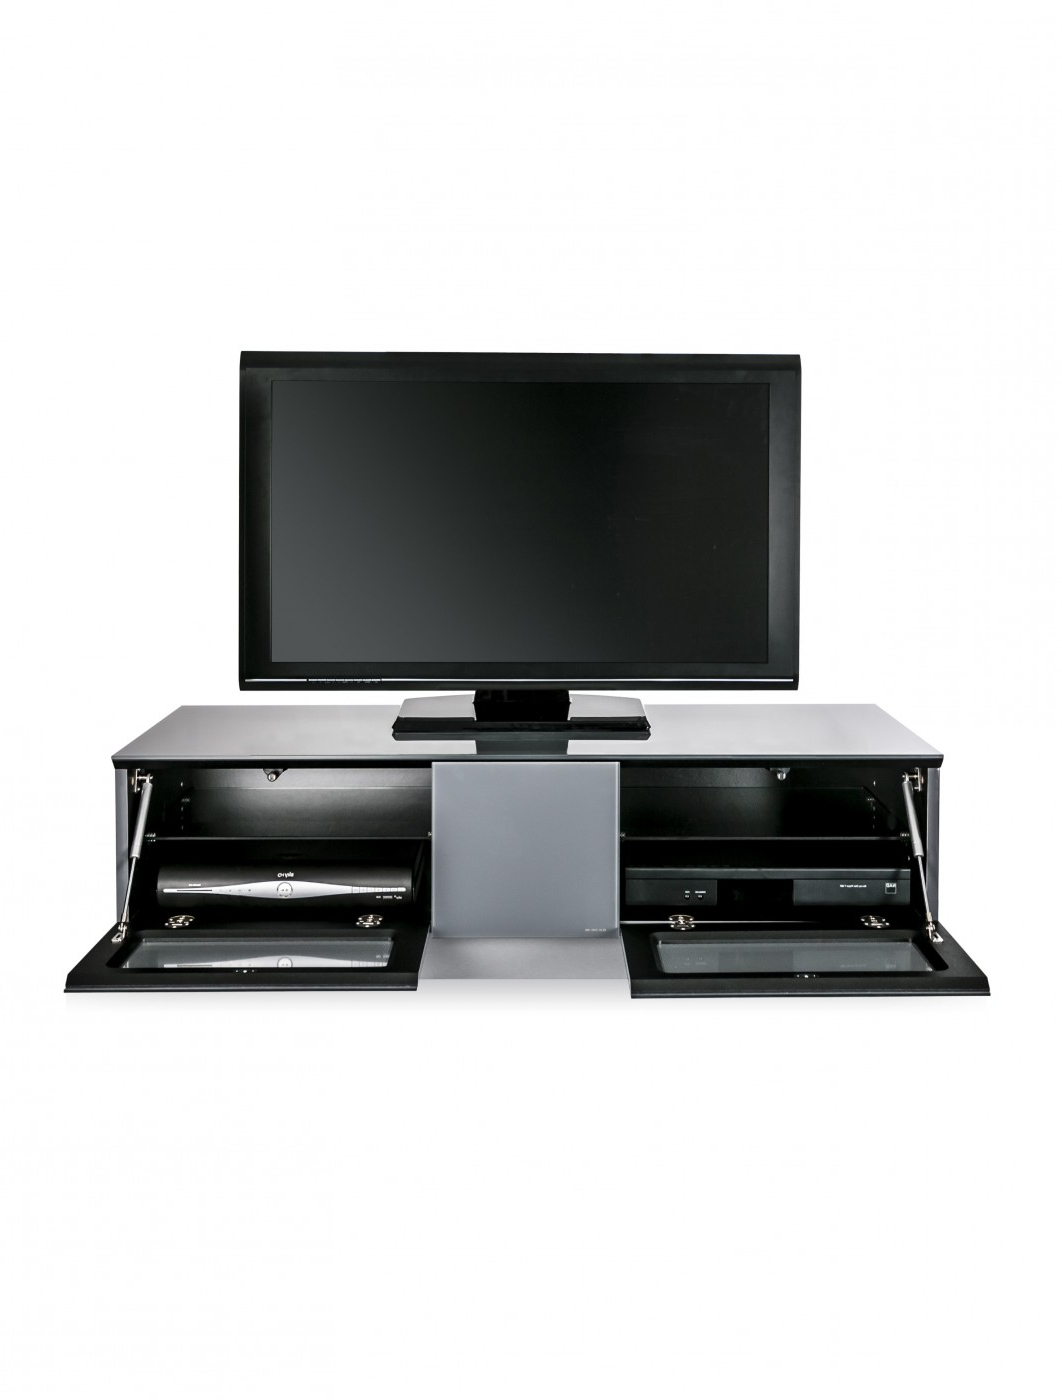 Recent 57'' Tv Stands With Open Glass Shelves Gray & Black Finsh Intended For Tv Stand Element Modular Emtmod1250 Gry Tv Cabinet (View 8 of 10)